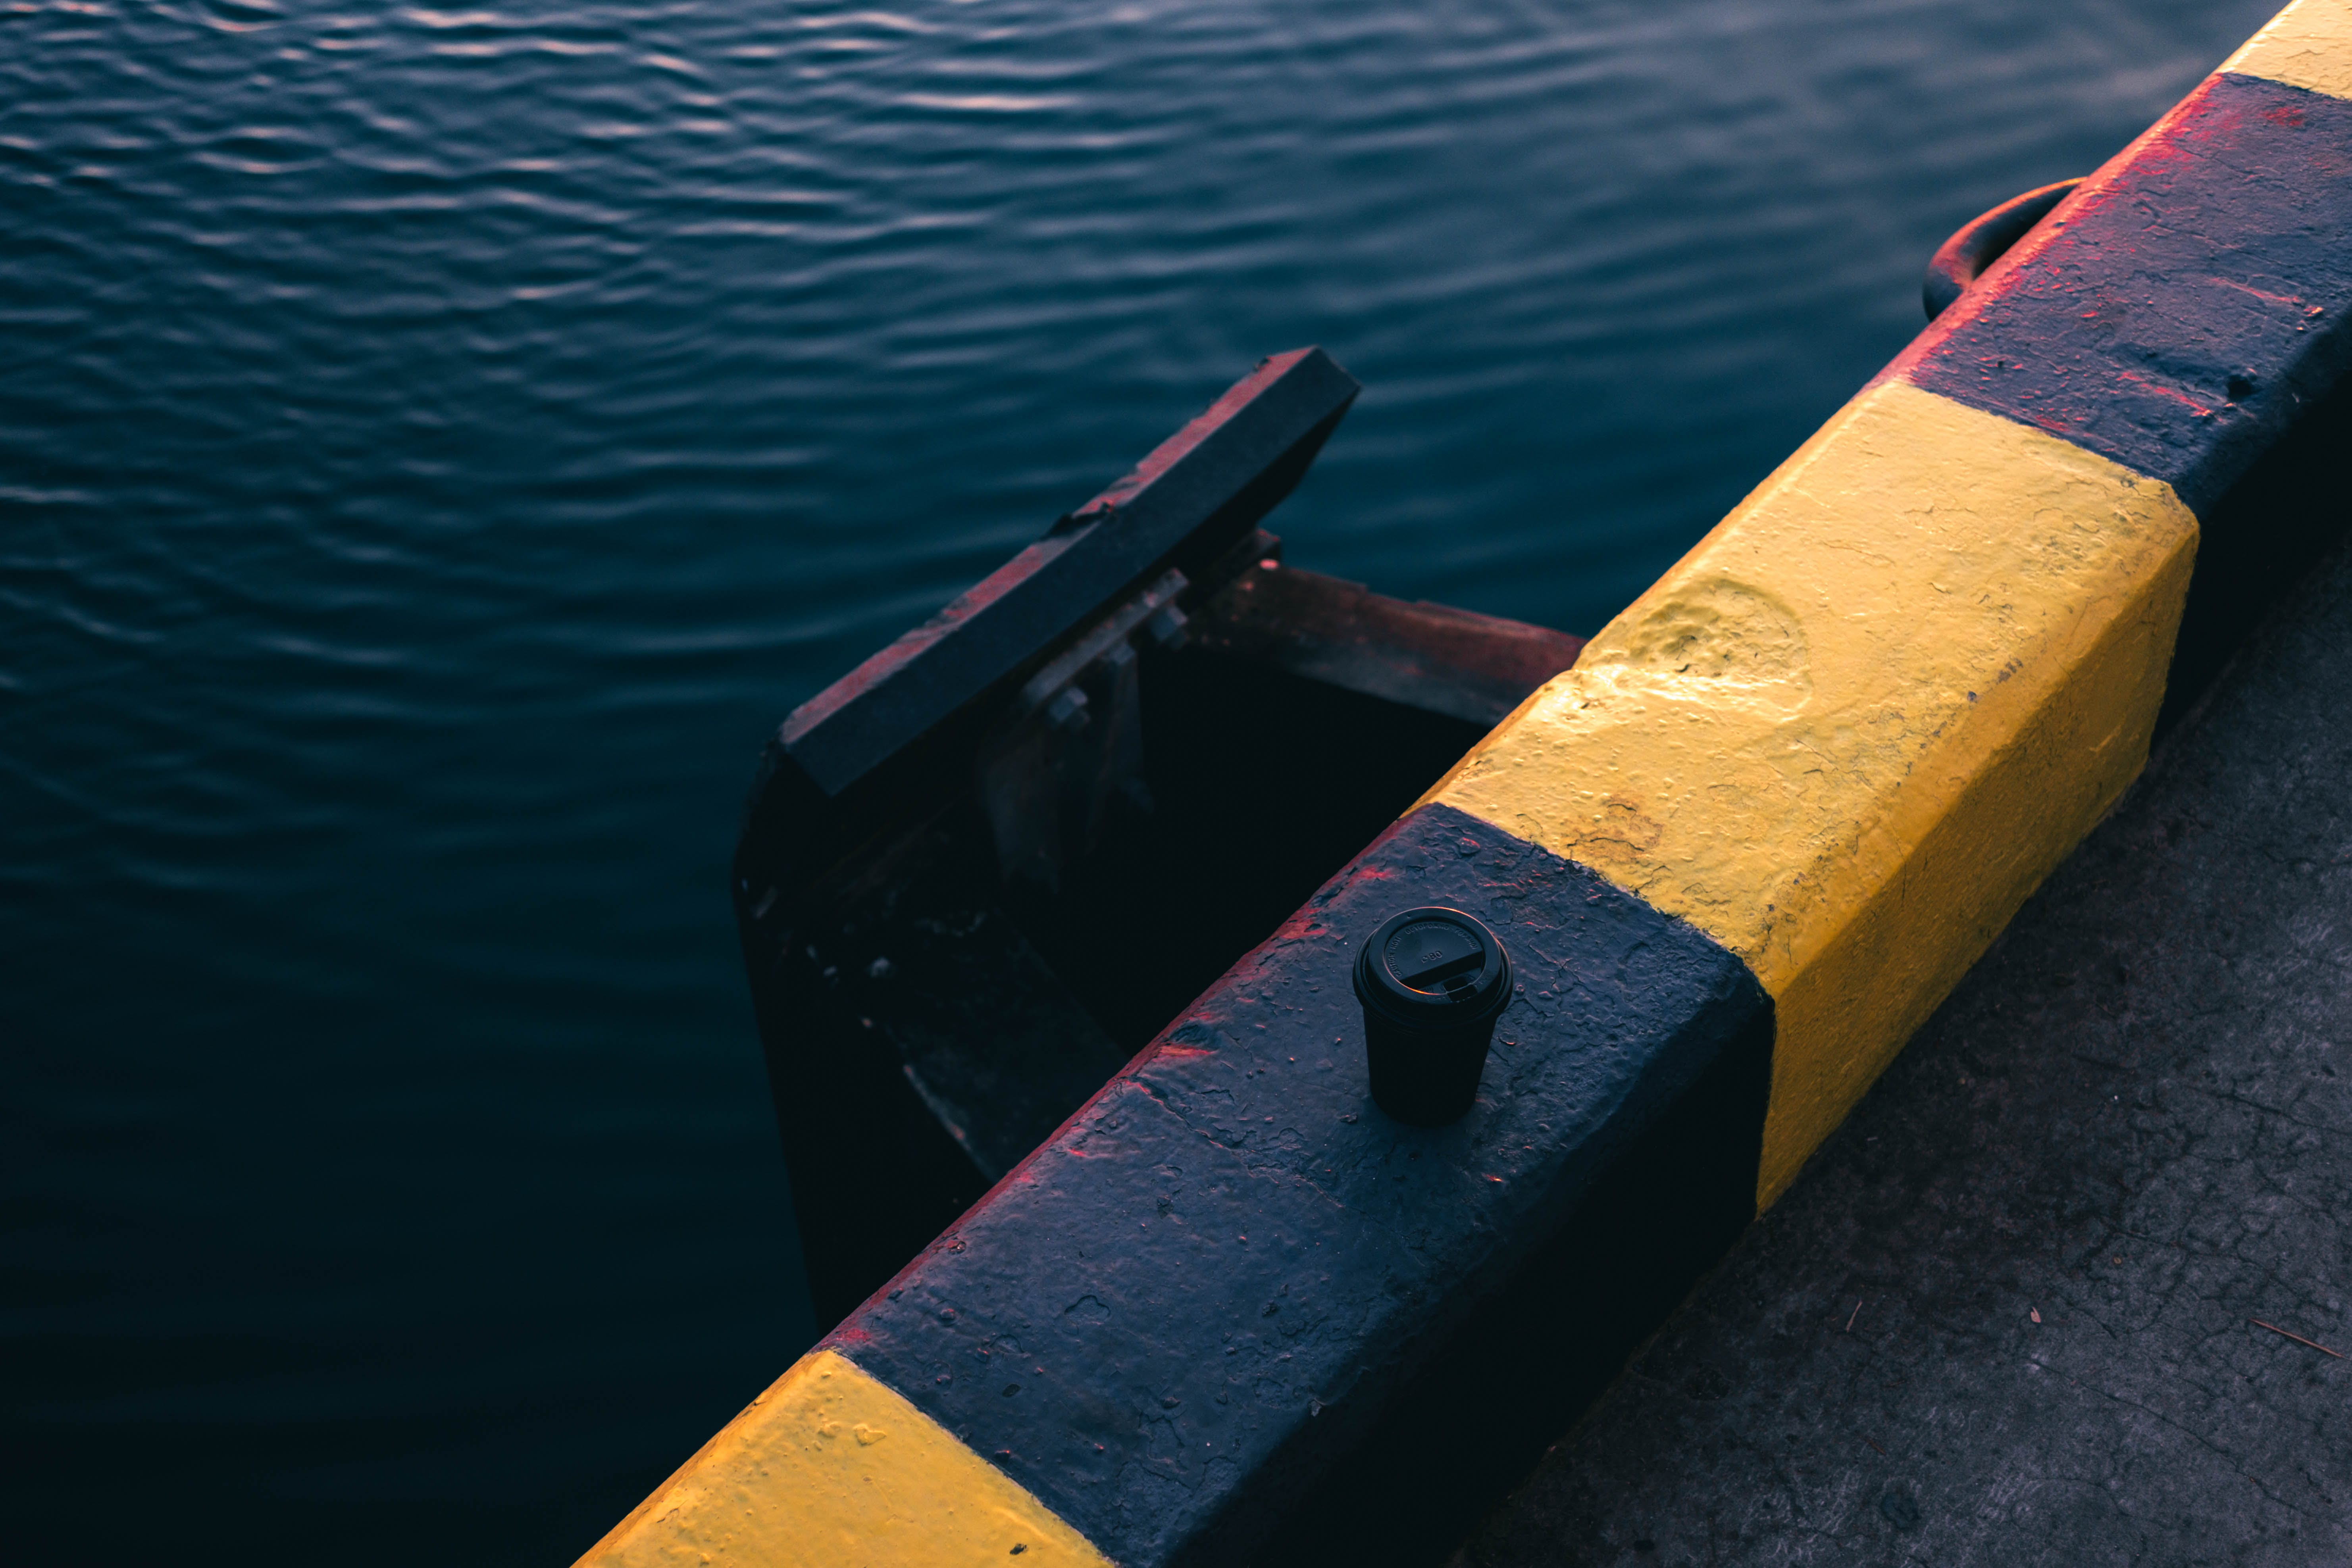 Yellow and Black Painted Bar Near Body of Water